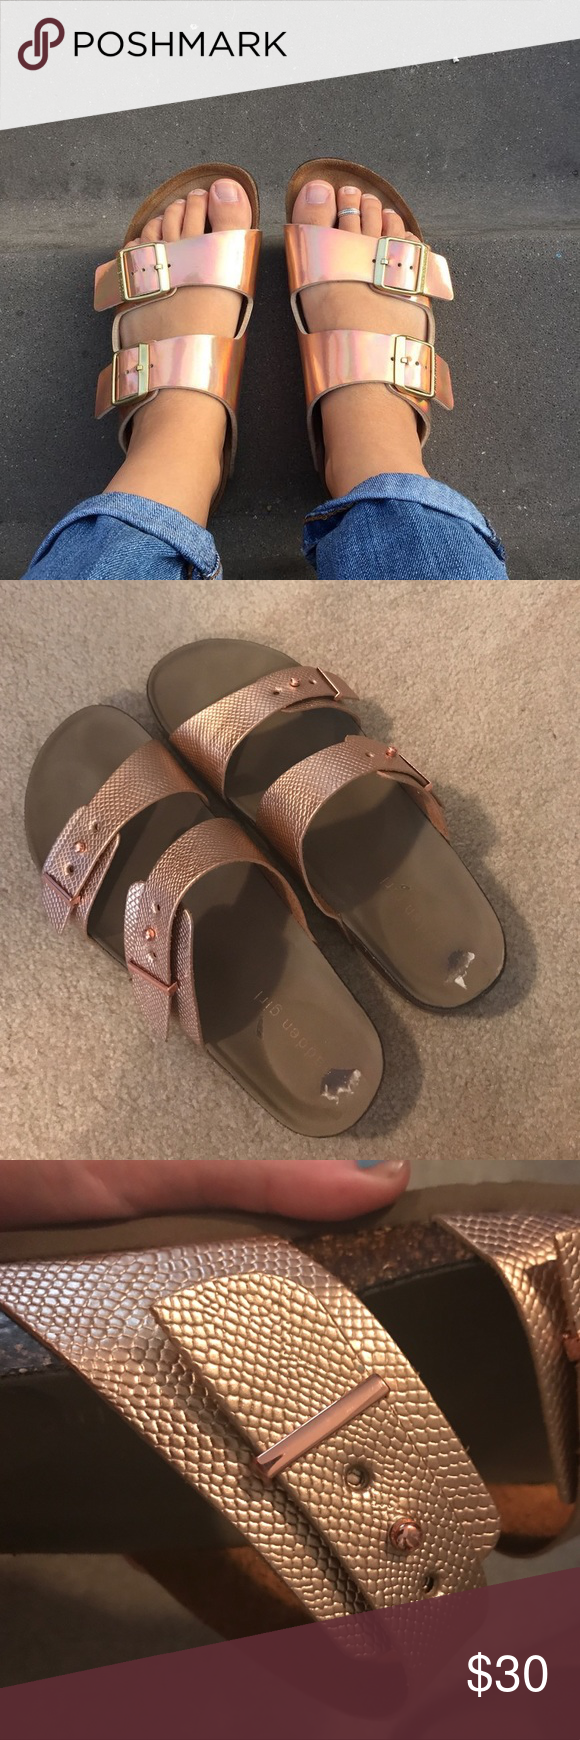 9e0be3eefb8a Rose Gold Steve Madden birkenstocks Perfect condition! Only worn once!  Great for adding just the right amount of metallic to an outfit! Steve  Madden Shoes ...